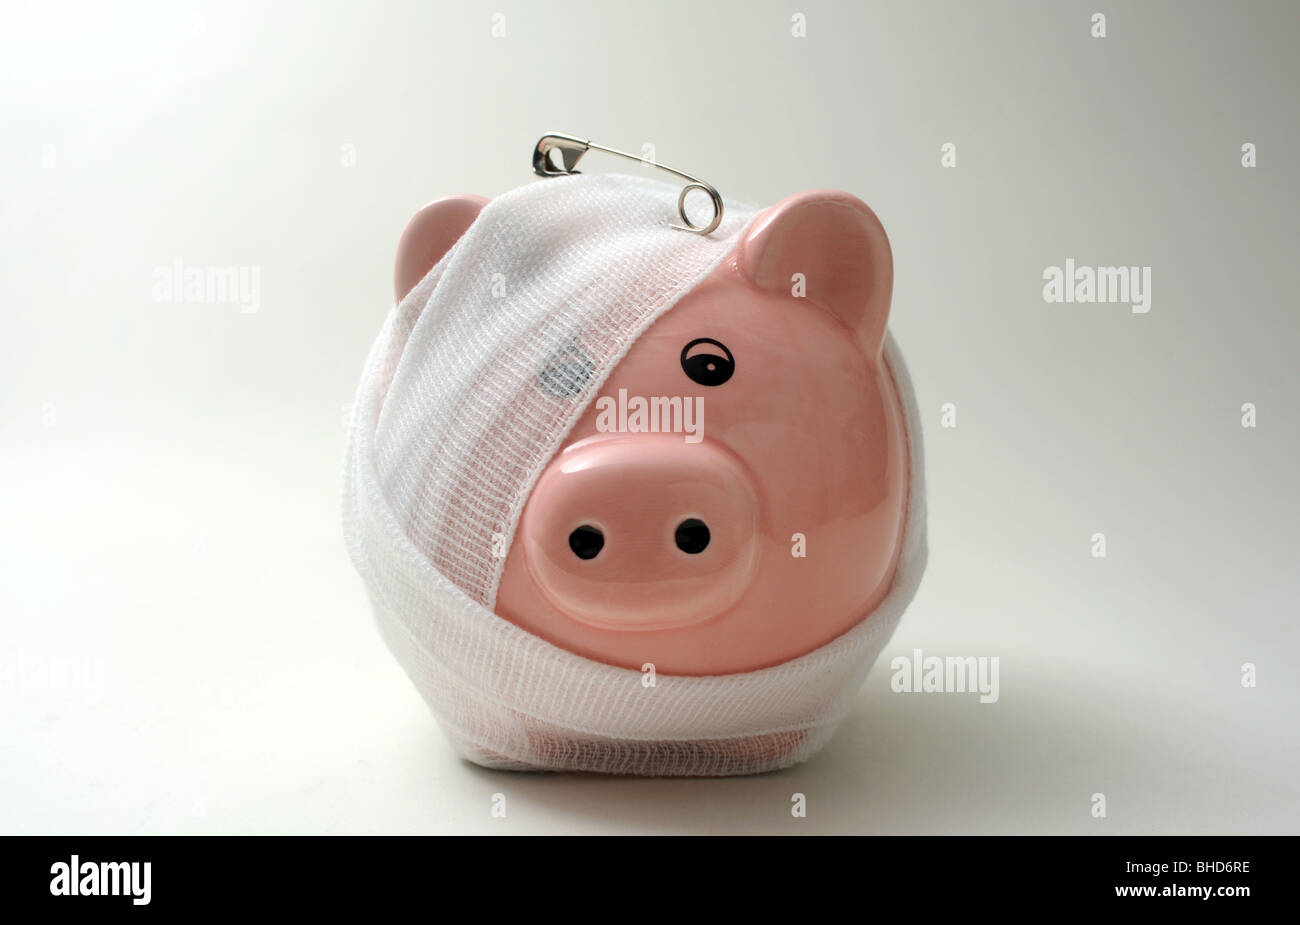 BANDAGED/INJURED PIGGYBANK WITH SAFETY PIN RE FINANCE LOANS CASH MONEY SAVINGS PIGGY BANK BANKS MORTGAGES INCOMES - Stock Image